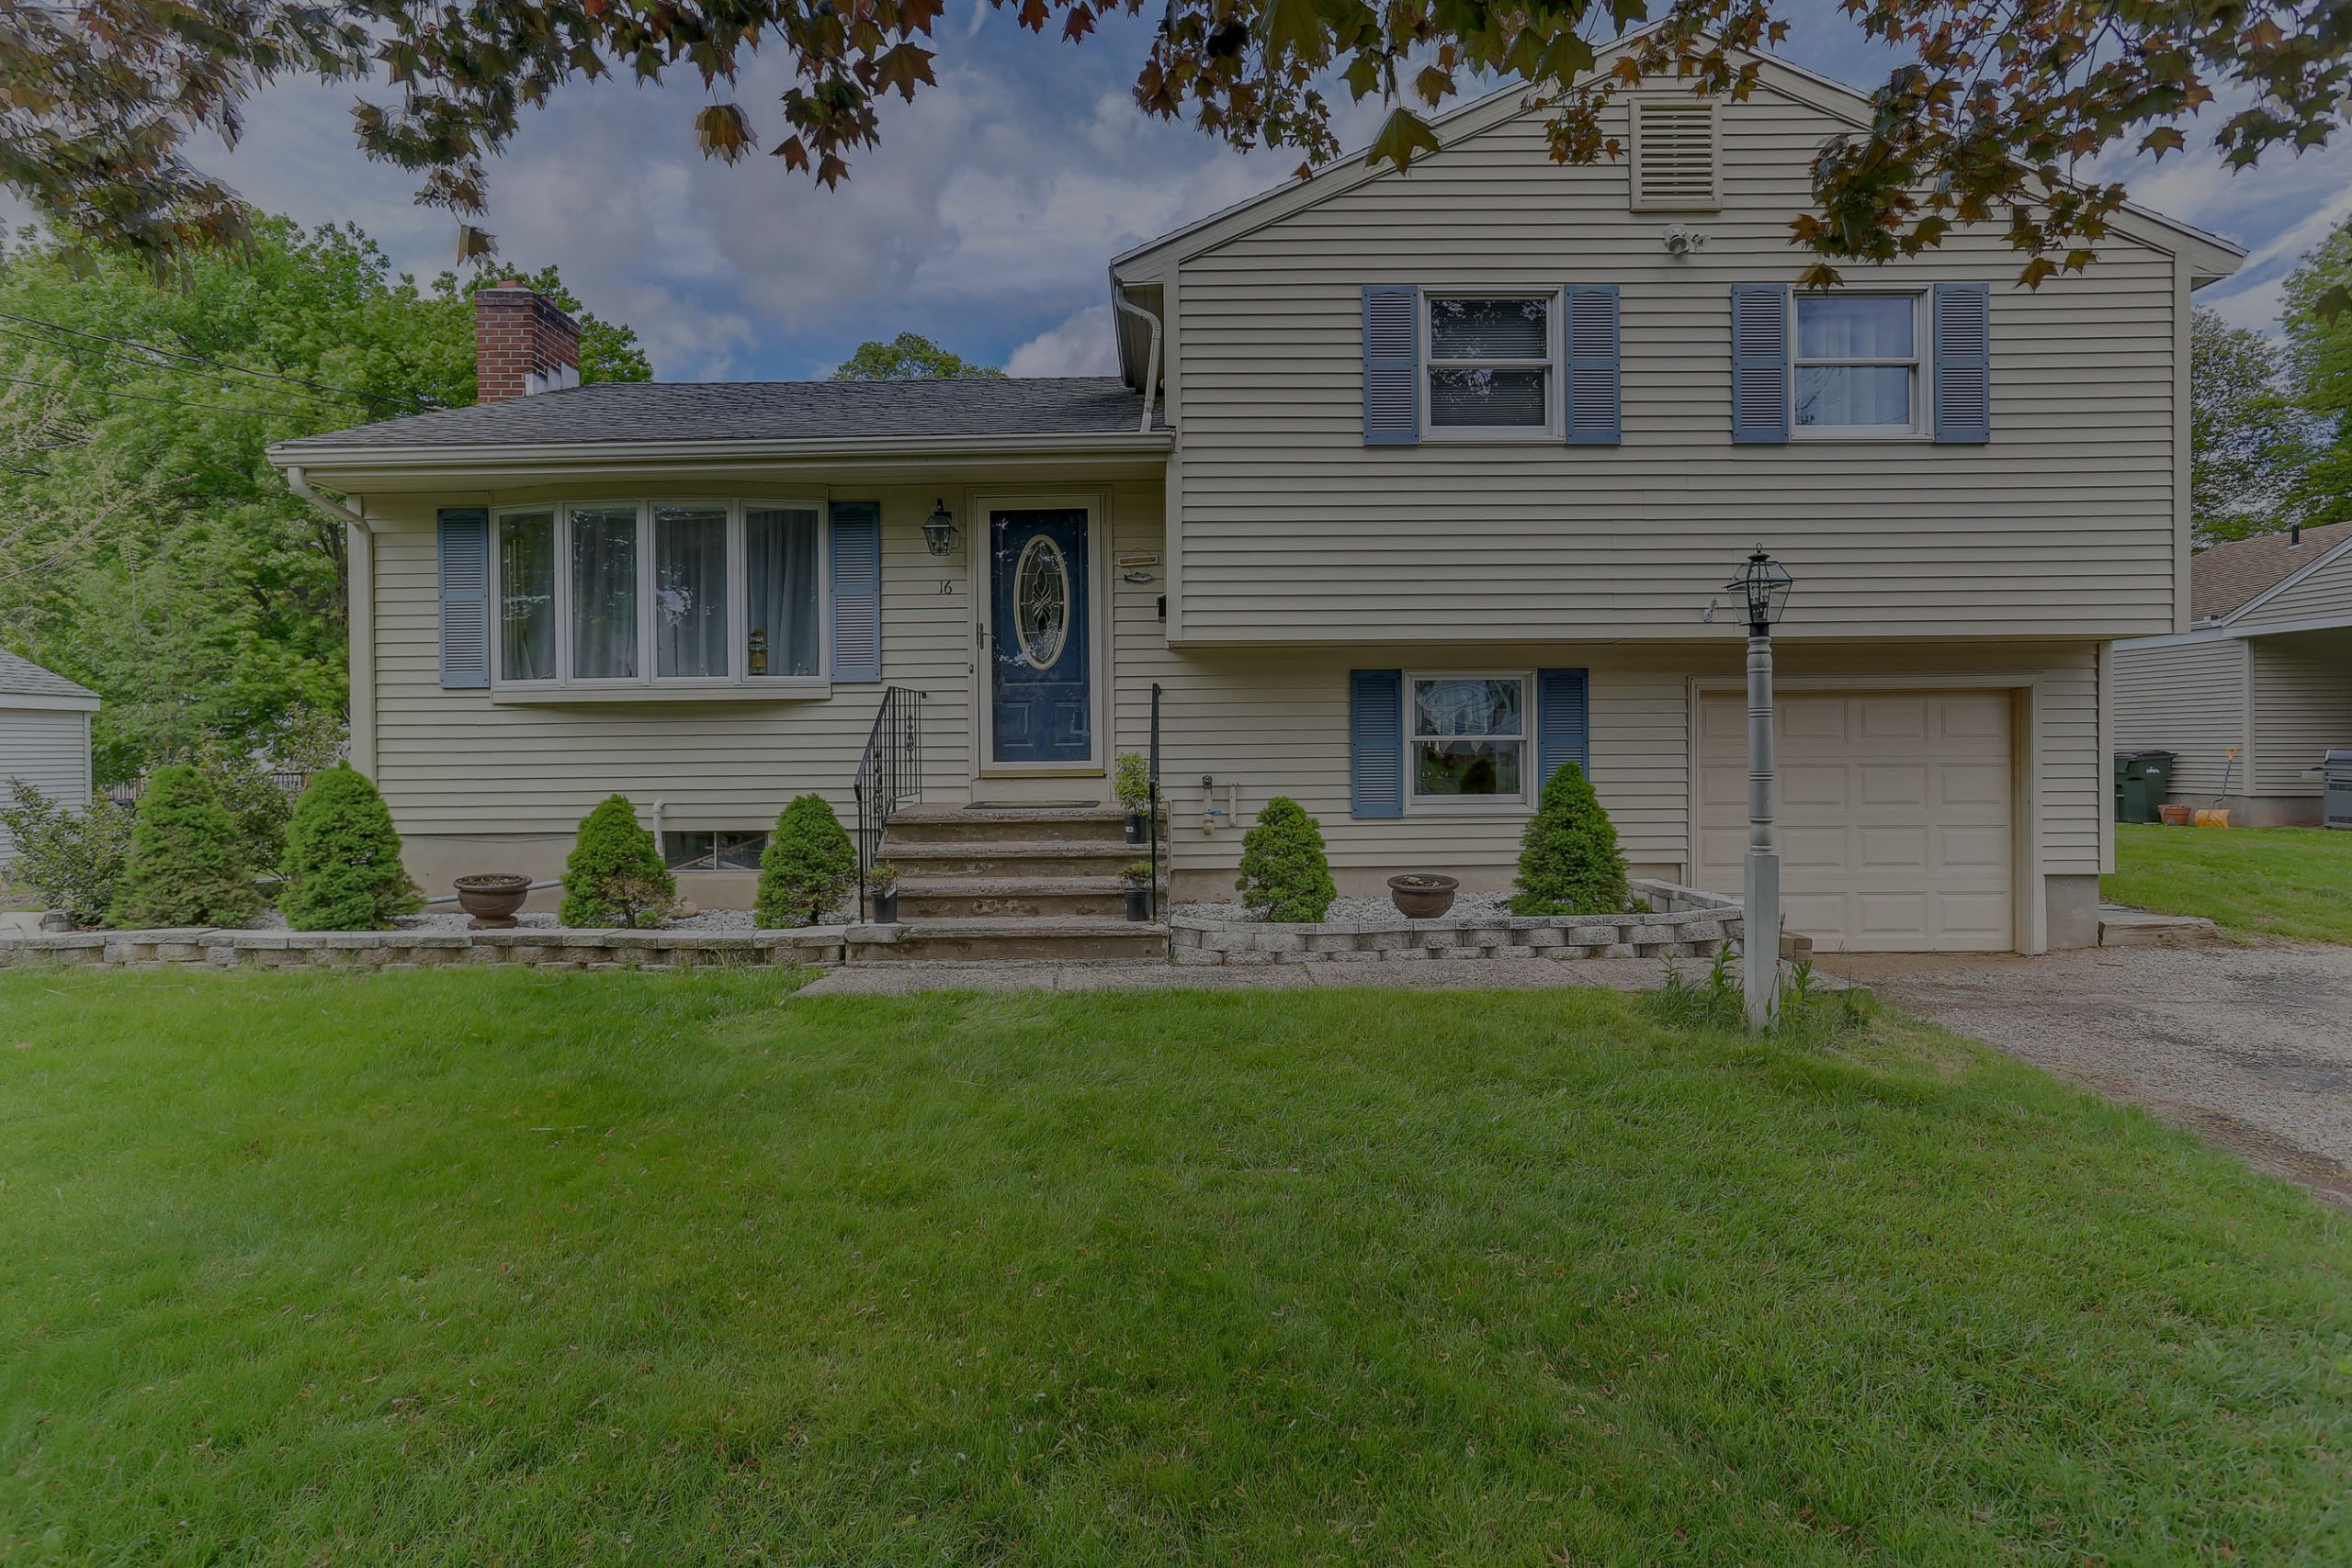 New Listing in Wethersfield!